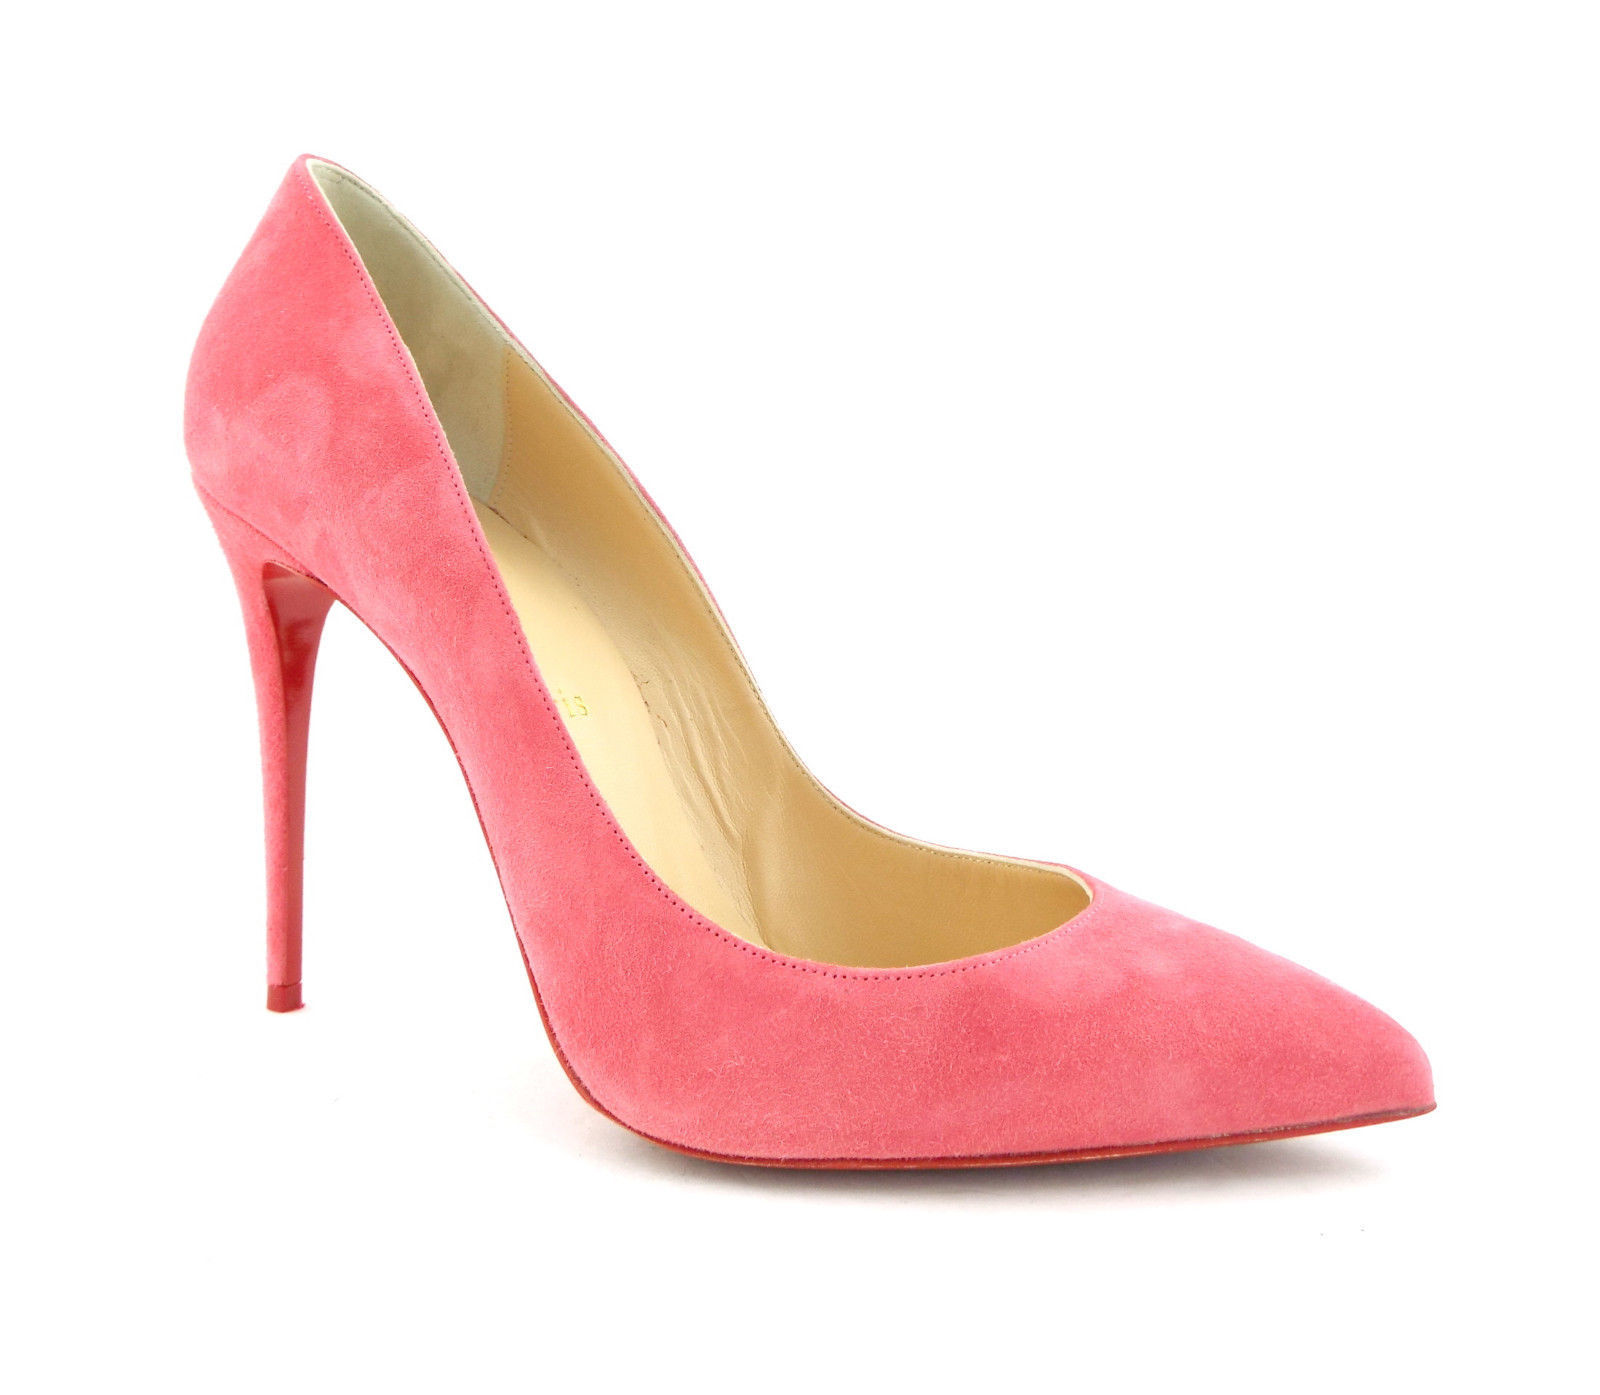 0fa319ac8149 CHRISTIAN LOUBOUTIN Size 8.5 PIGALLE FOLLIES Pink Suede Heels Pumps Shoes  39 -  479.00